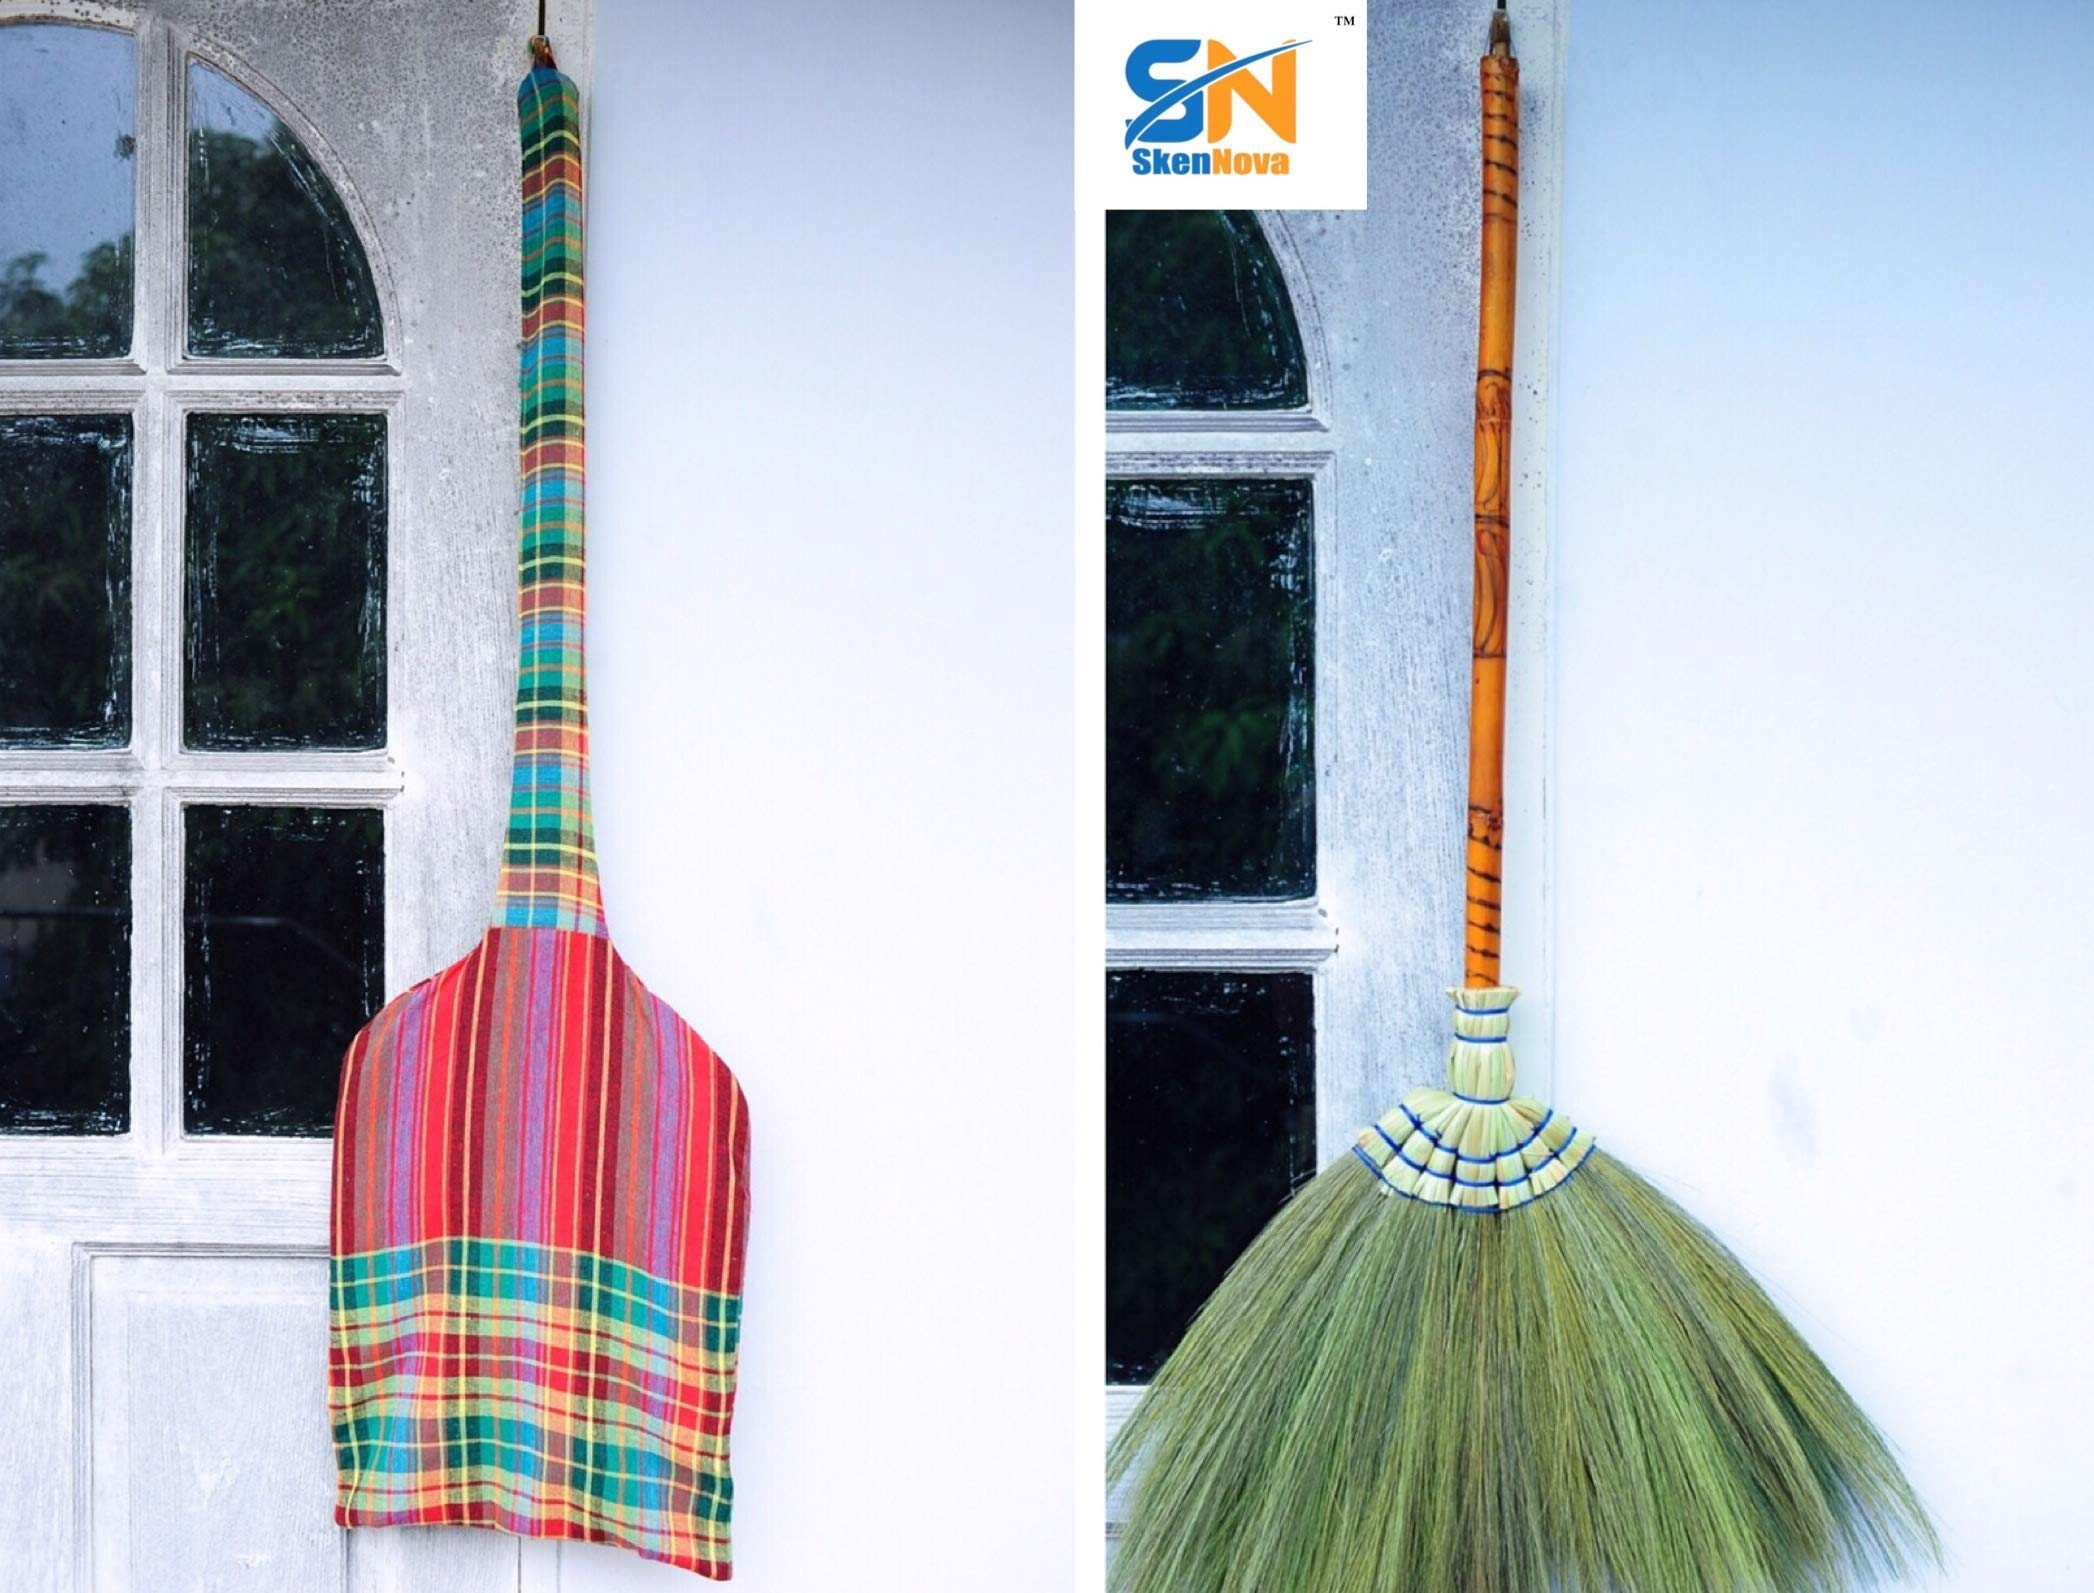 SKENNOVA - Thai Vintage Retro Grass Broom Boiled Wood Stick Handle Hand Grip Sedge with Grass Durable Broom Housewarming Gifts Asian Broom 40 inch with Loincloth Broom Bag with Hanger by SKENNOVA